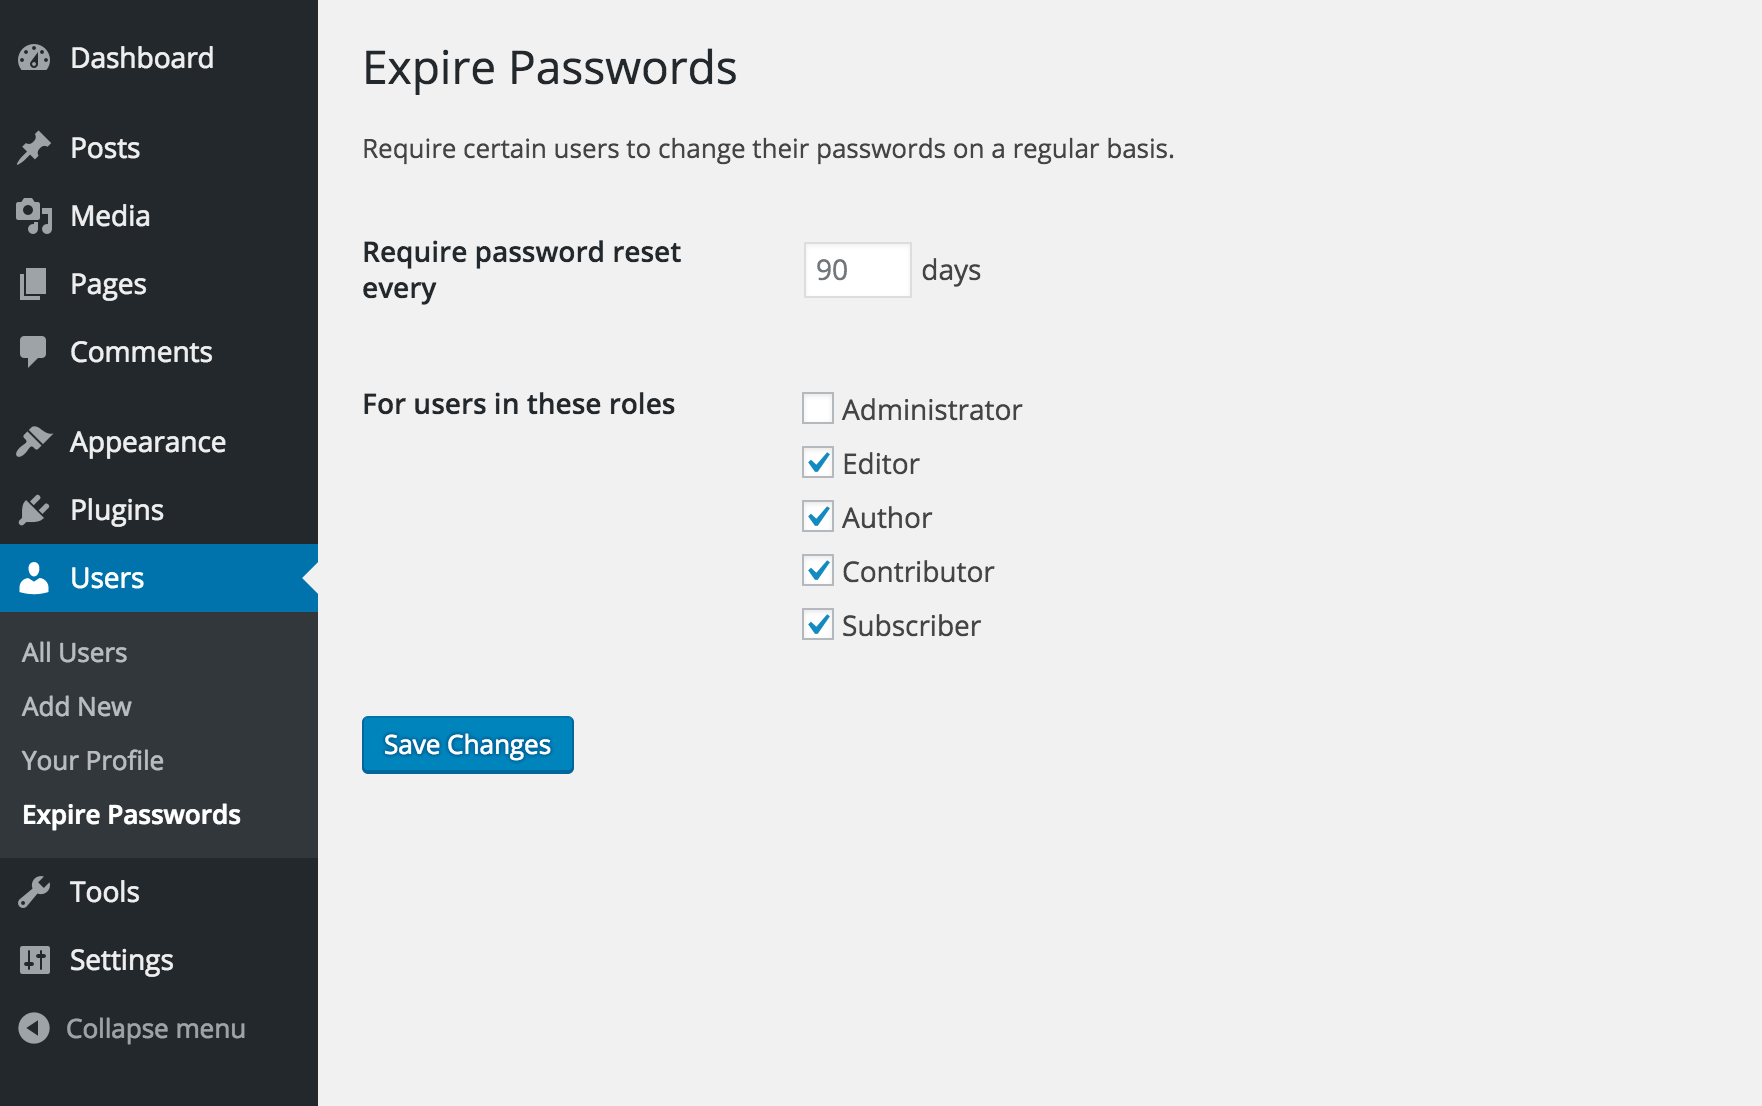 expire-passwords screenshot 1